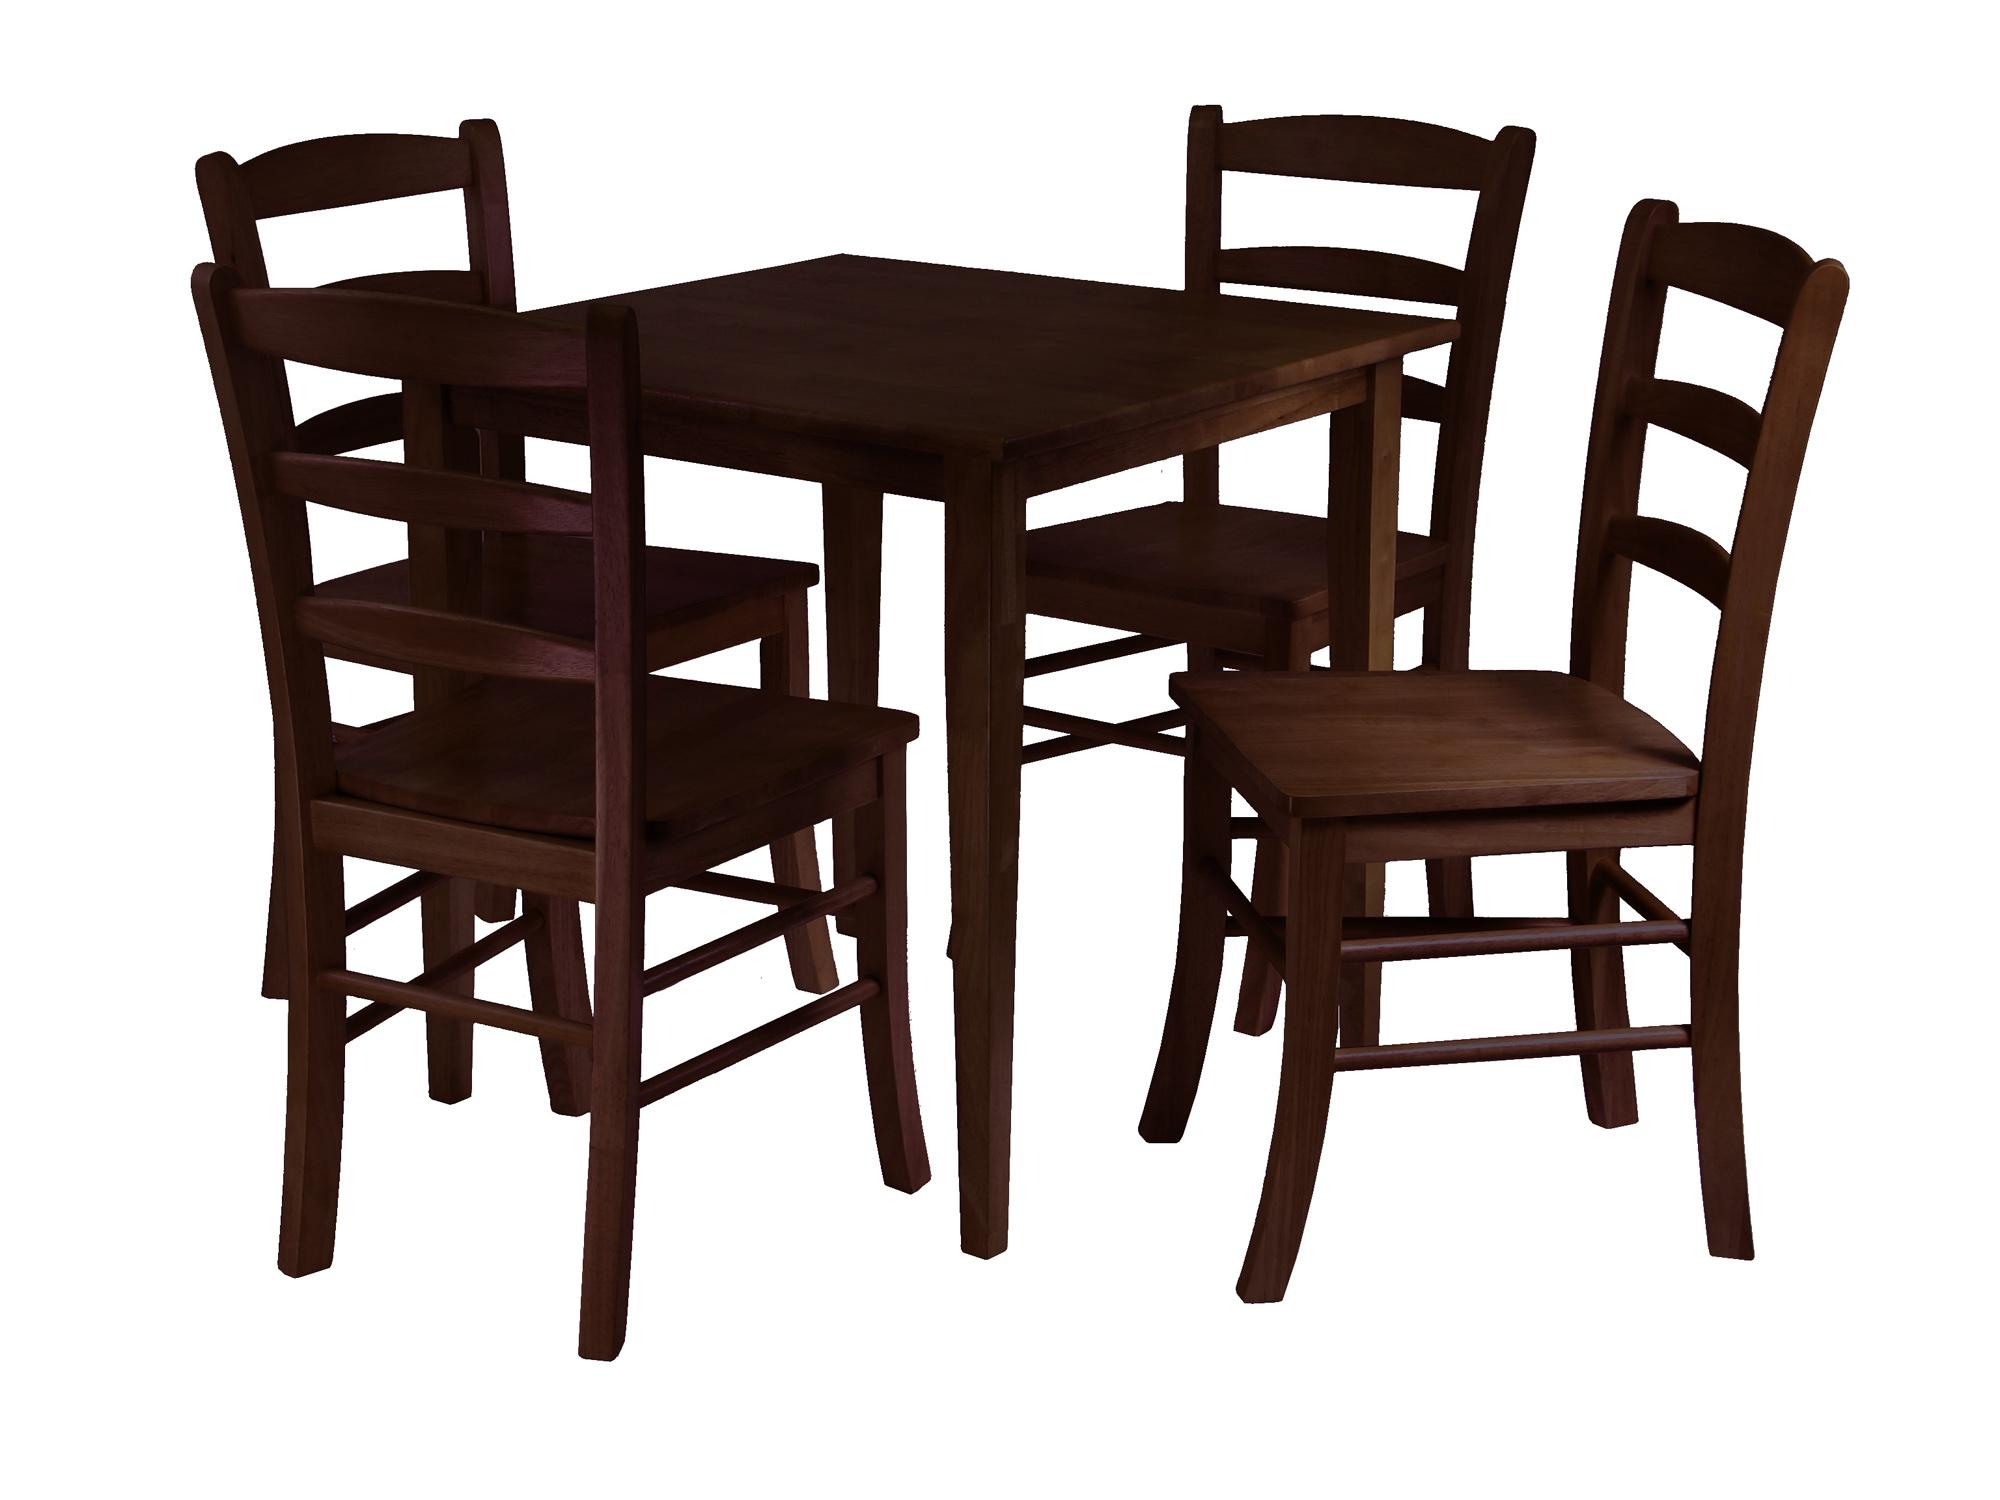 Tables and chairs clipart freeuse Round Table Clip Art Clipart Panda Free Clipart Images freeuse